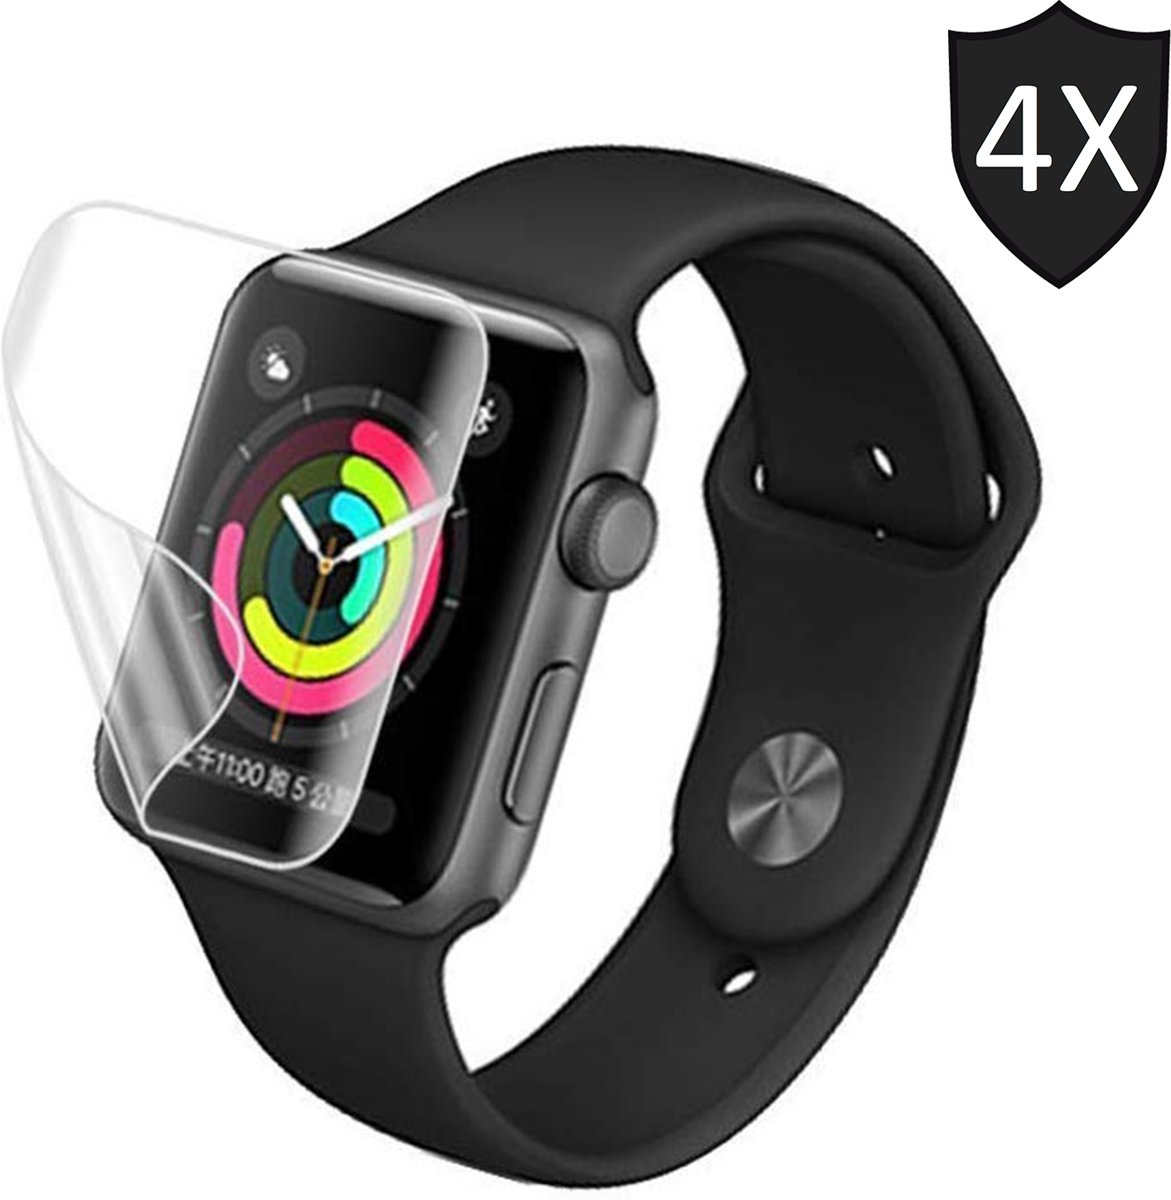 Screenprotector voor Apple Watch 44mm Series 4 van iCall - Crystal Clear - 4 stuks kopen